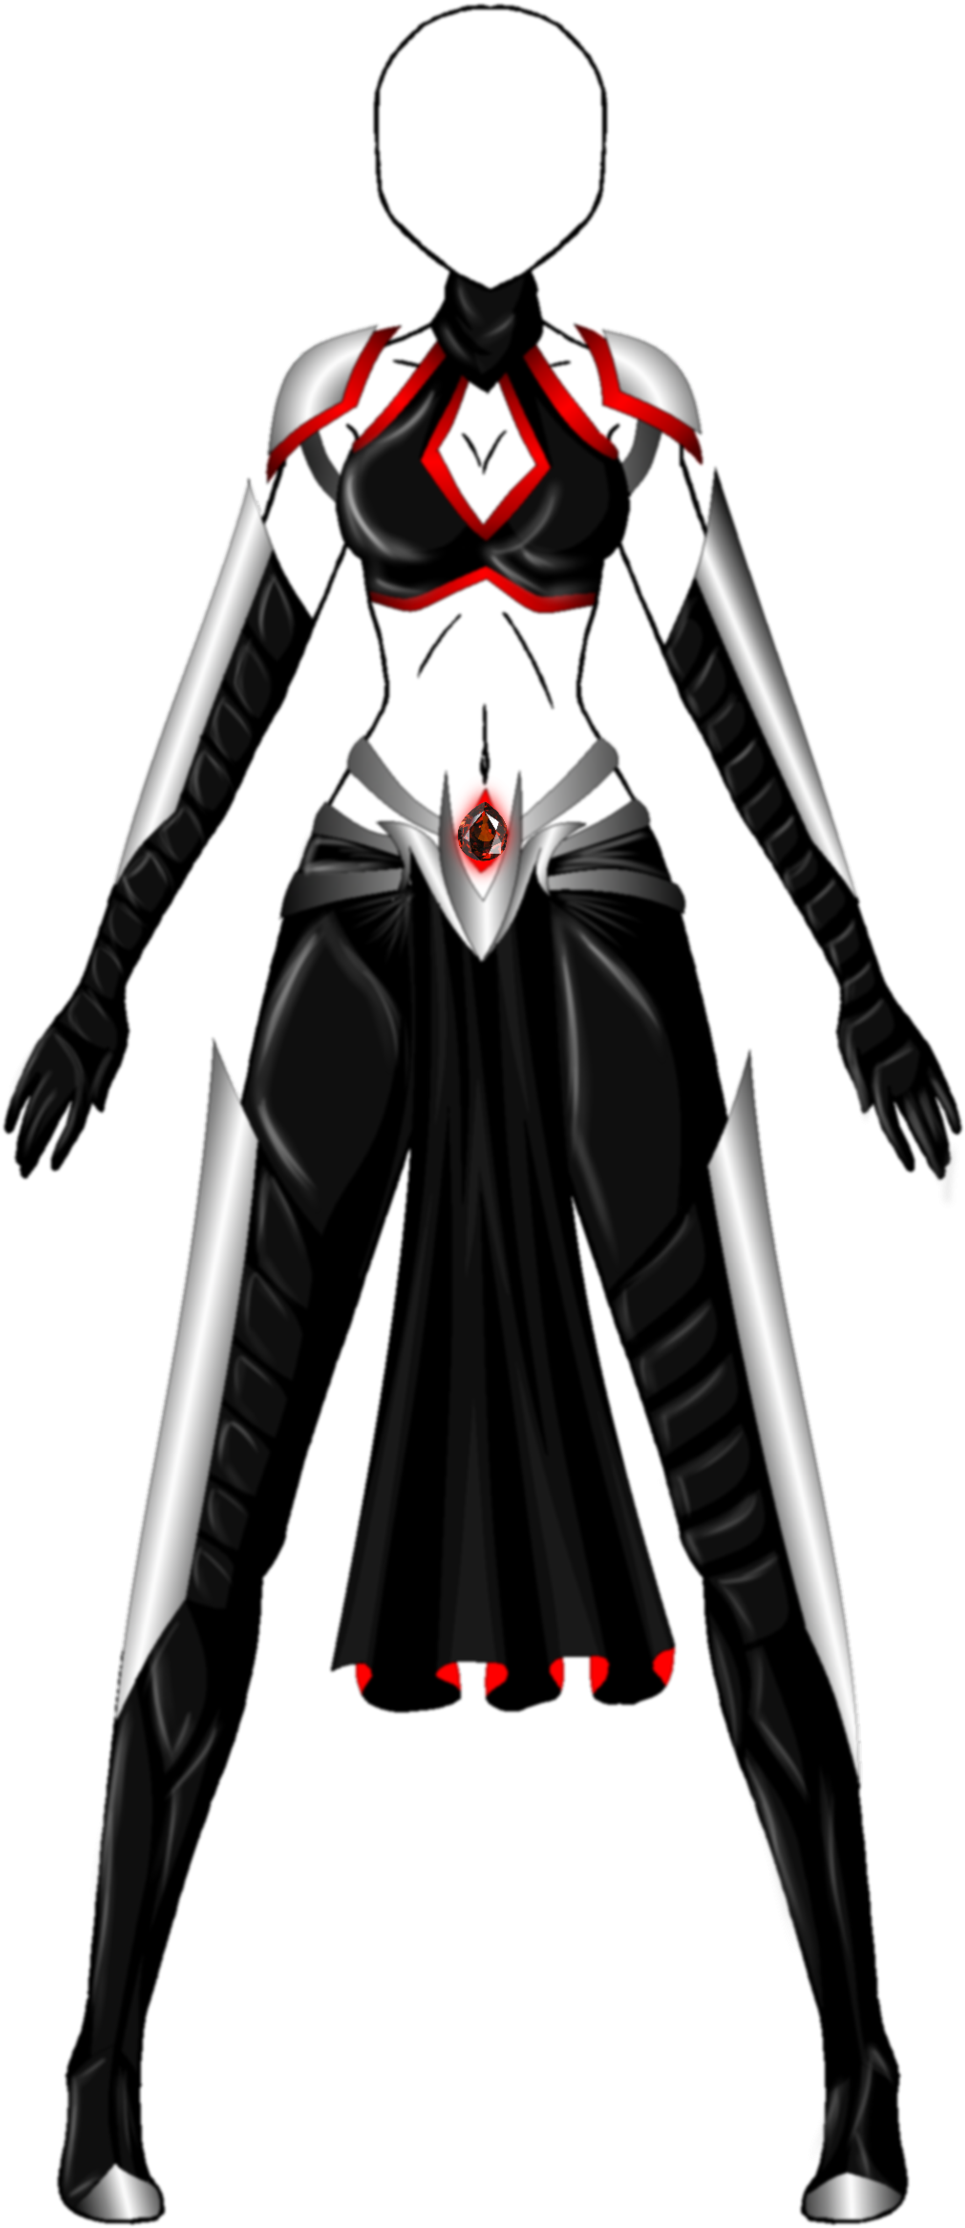 Robes drawing white. Download hd assassin png